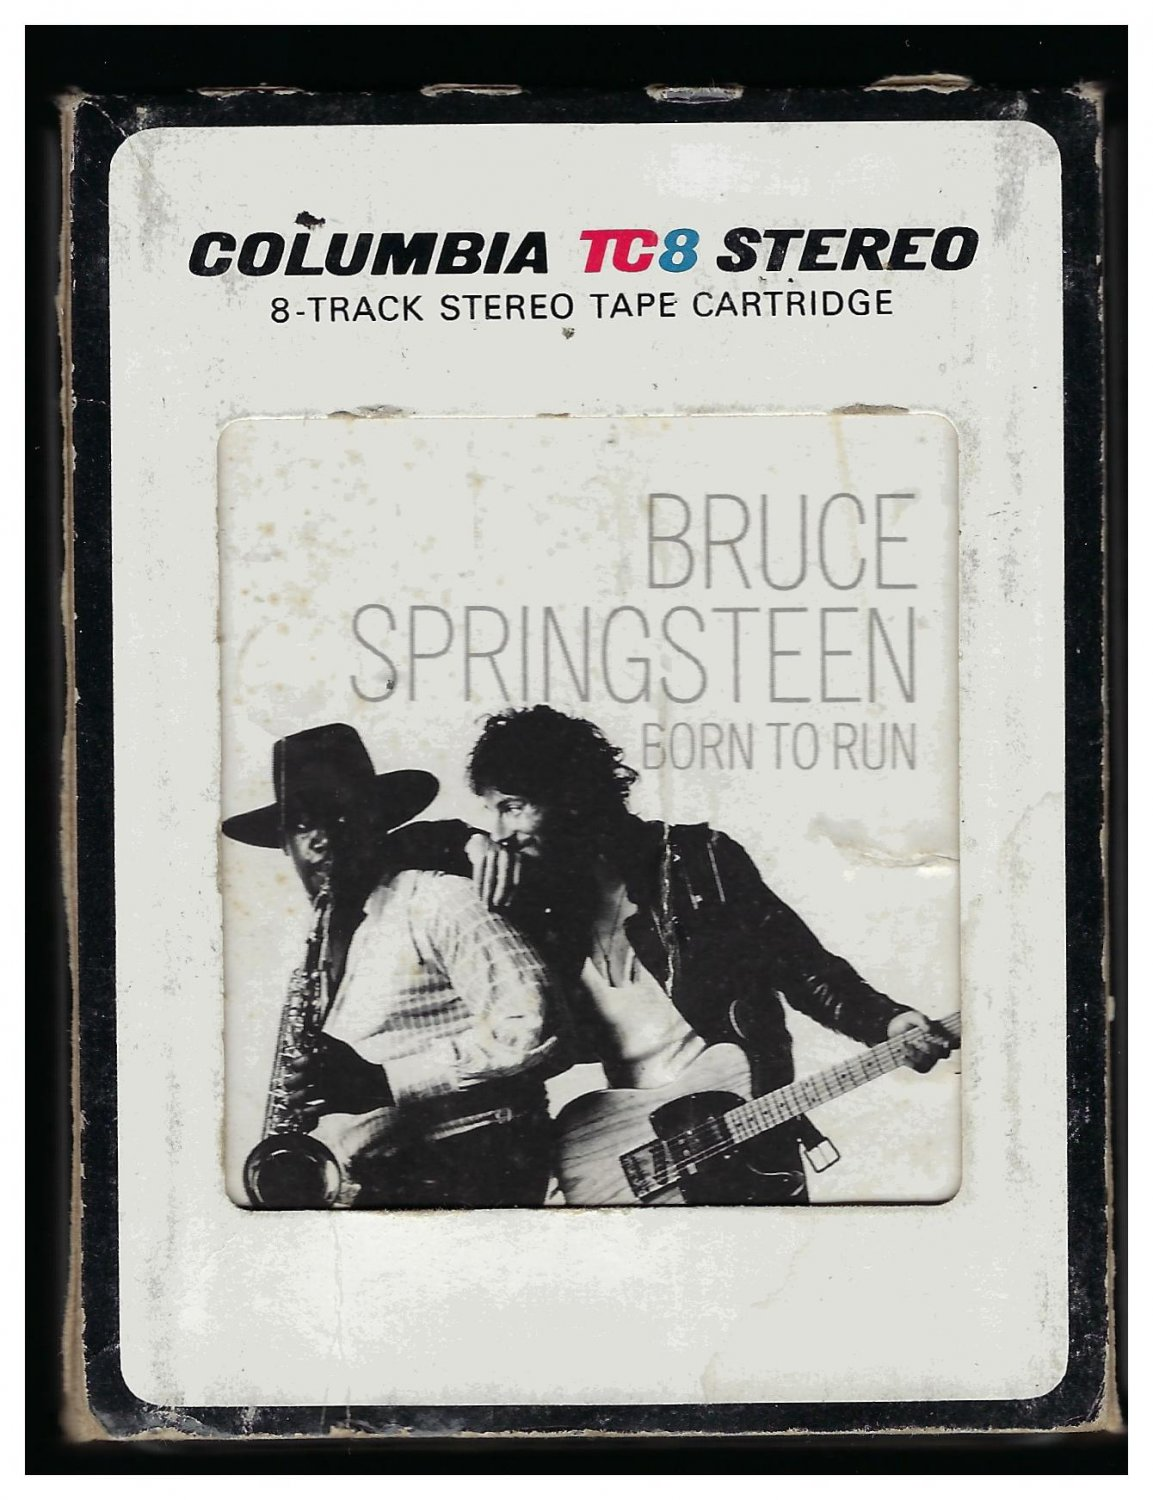 Bruce Springsteen - Born To Run 1975 CBS A43 8-TRACK TAPE